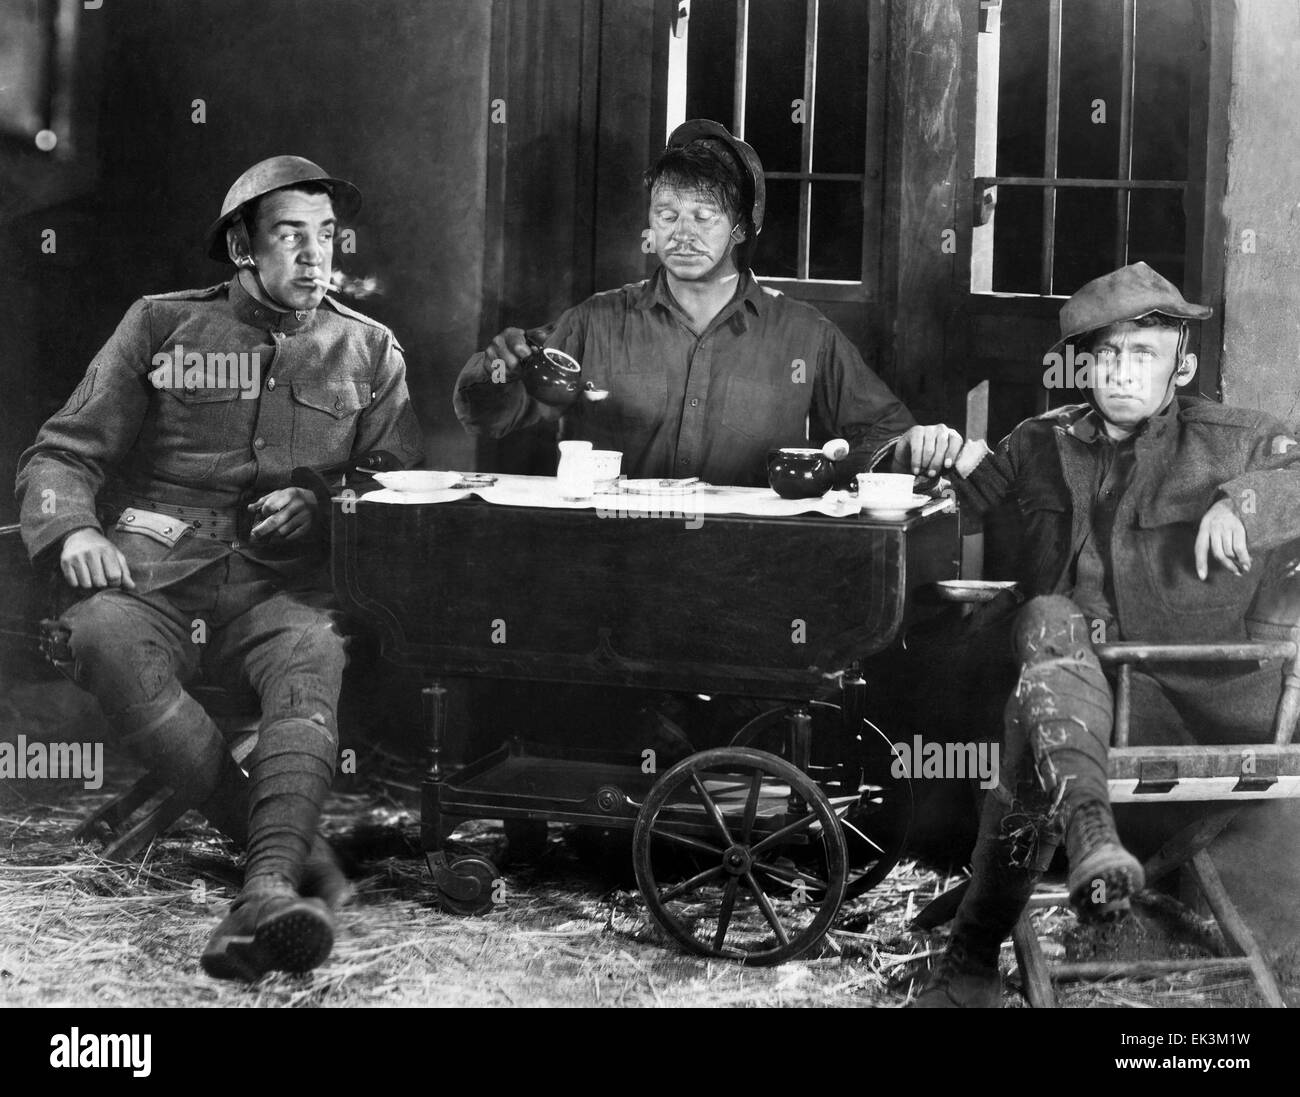 Tom Kennedy, Wallace Beery, Raymond Hatton, on-set of the Silent Film 'Behind the Front', 1926 - Stock Image